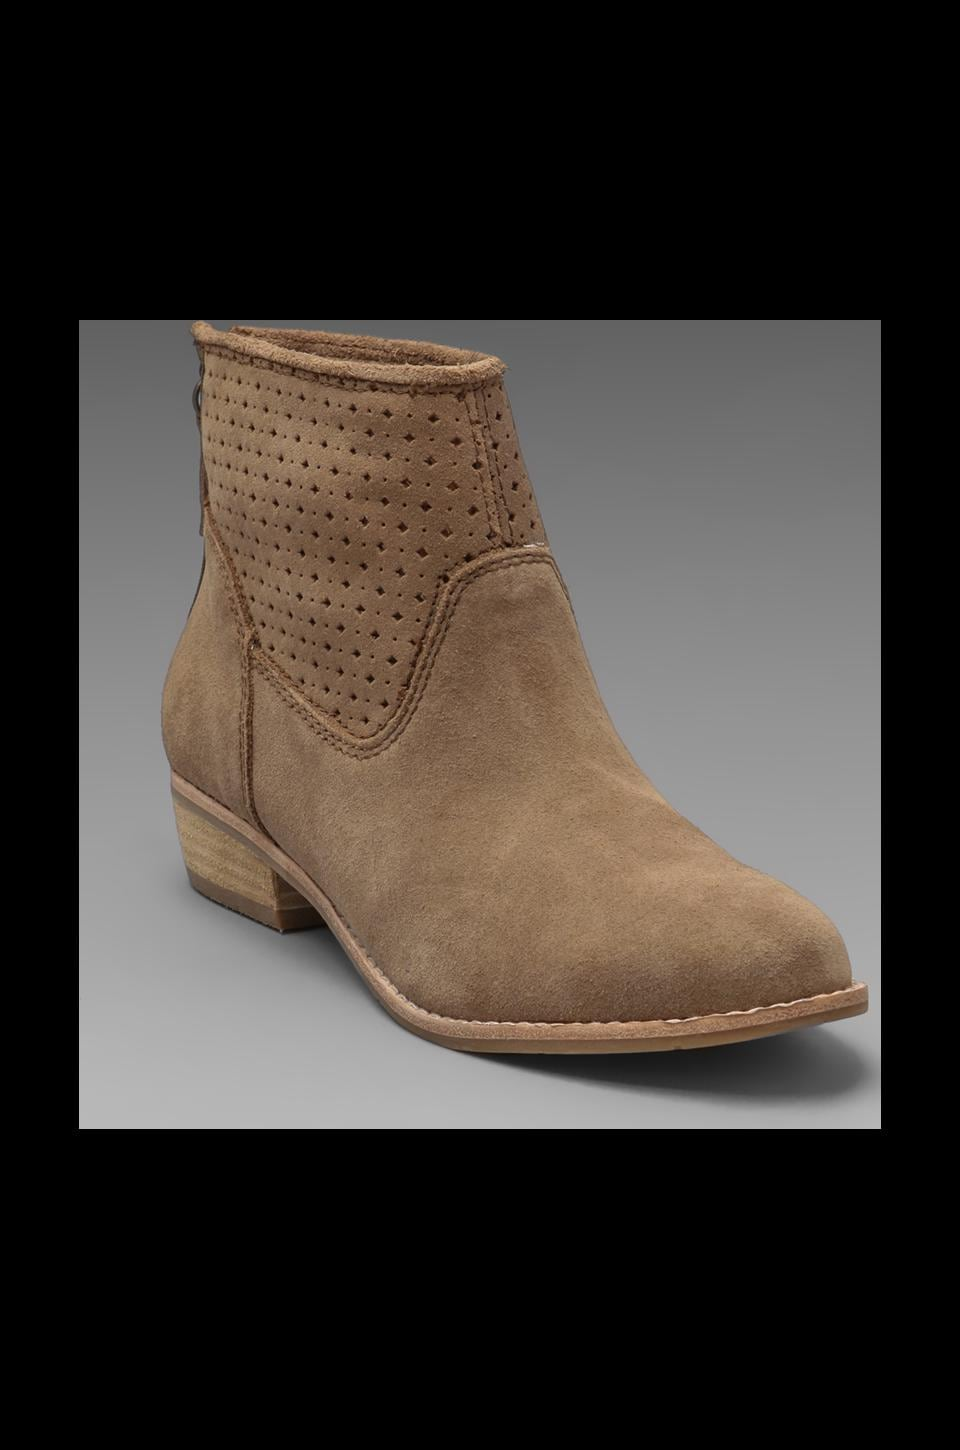 Dolce Vita Maeve Boot in Taupe